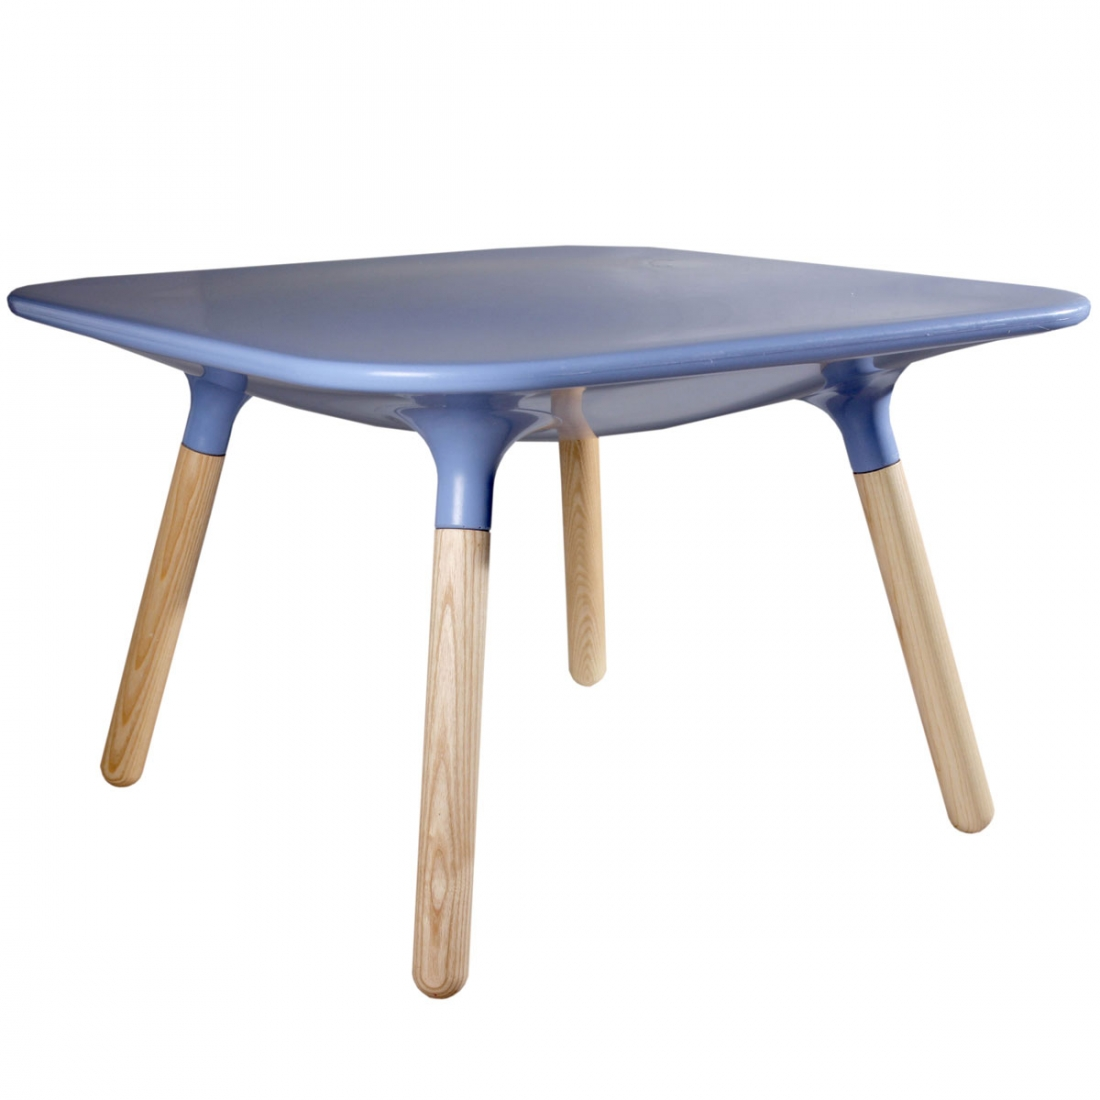 Table basse design de jardin marguerite stamp edition - Table basse design solde ...